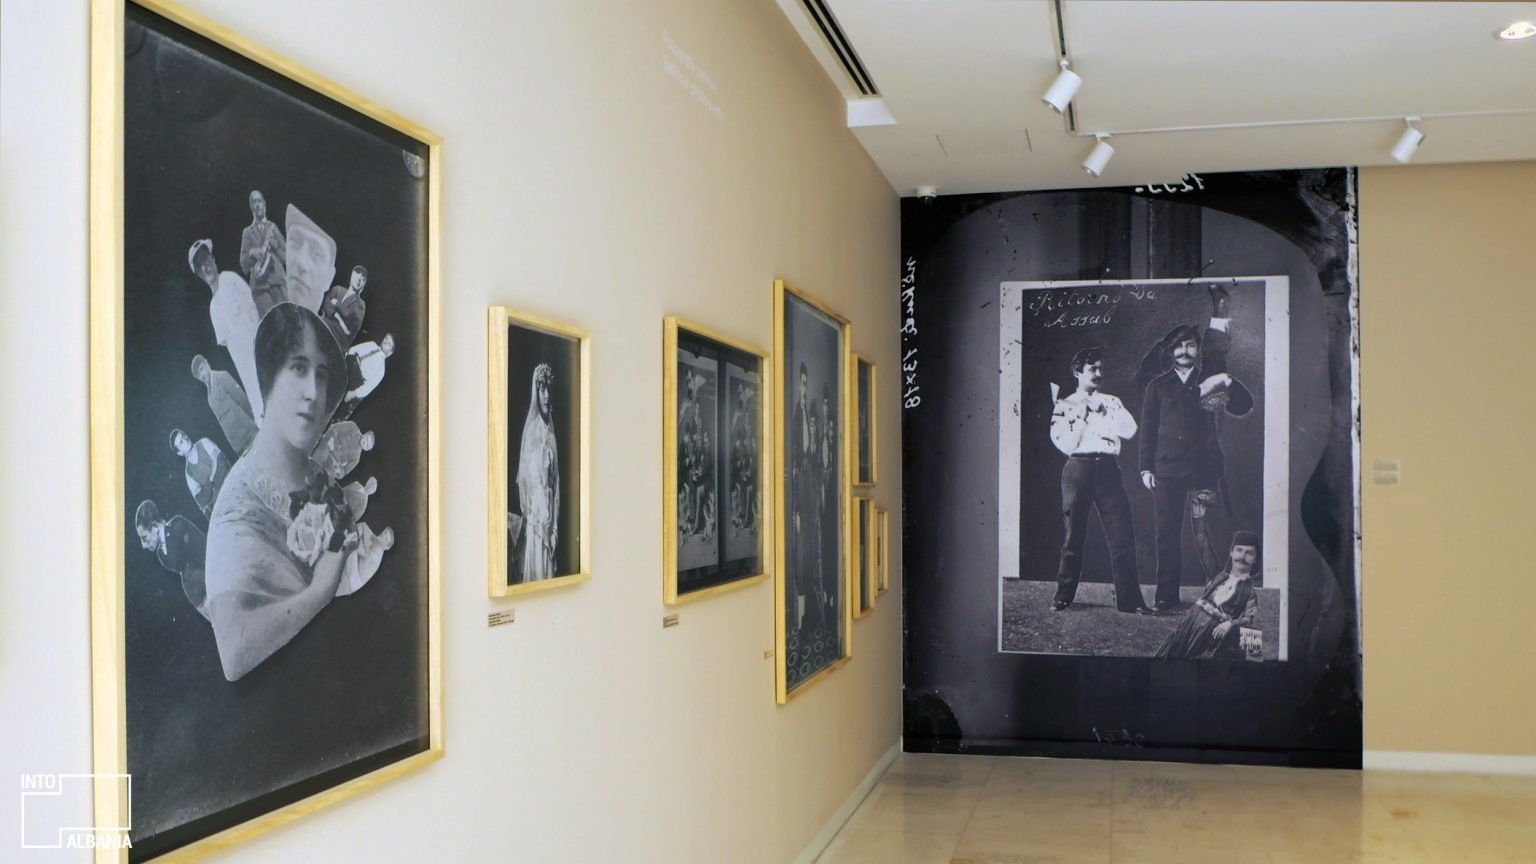 Marubi National Photography Museum, Shkodra, photo by IntoAlbania